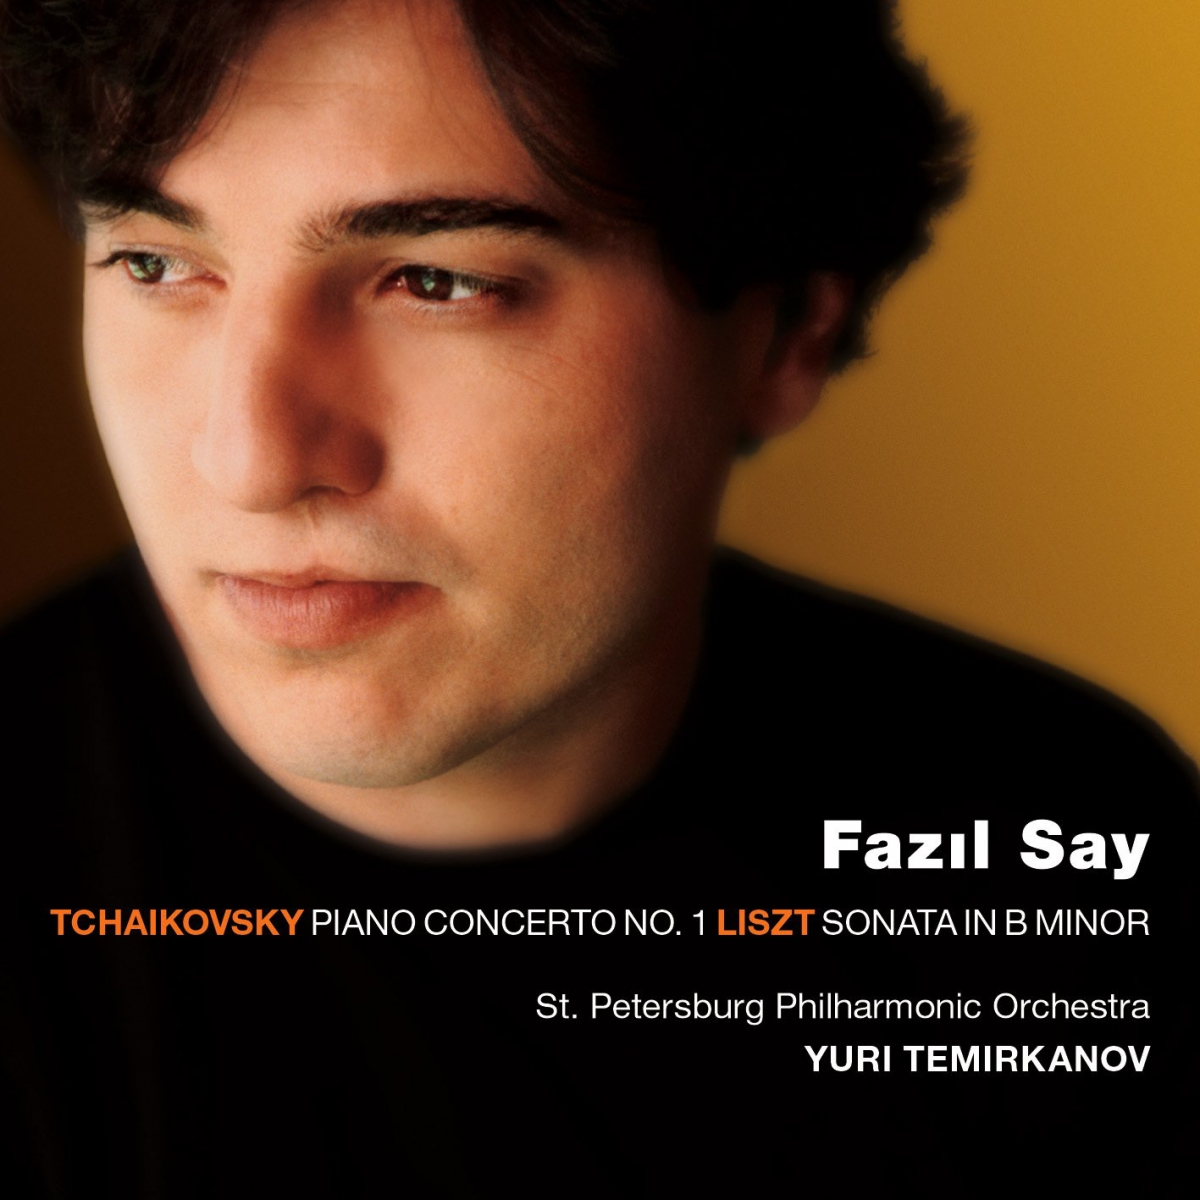 Ate orga on the piano recordings of fazil say